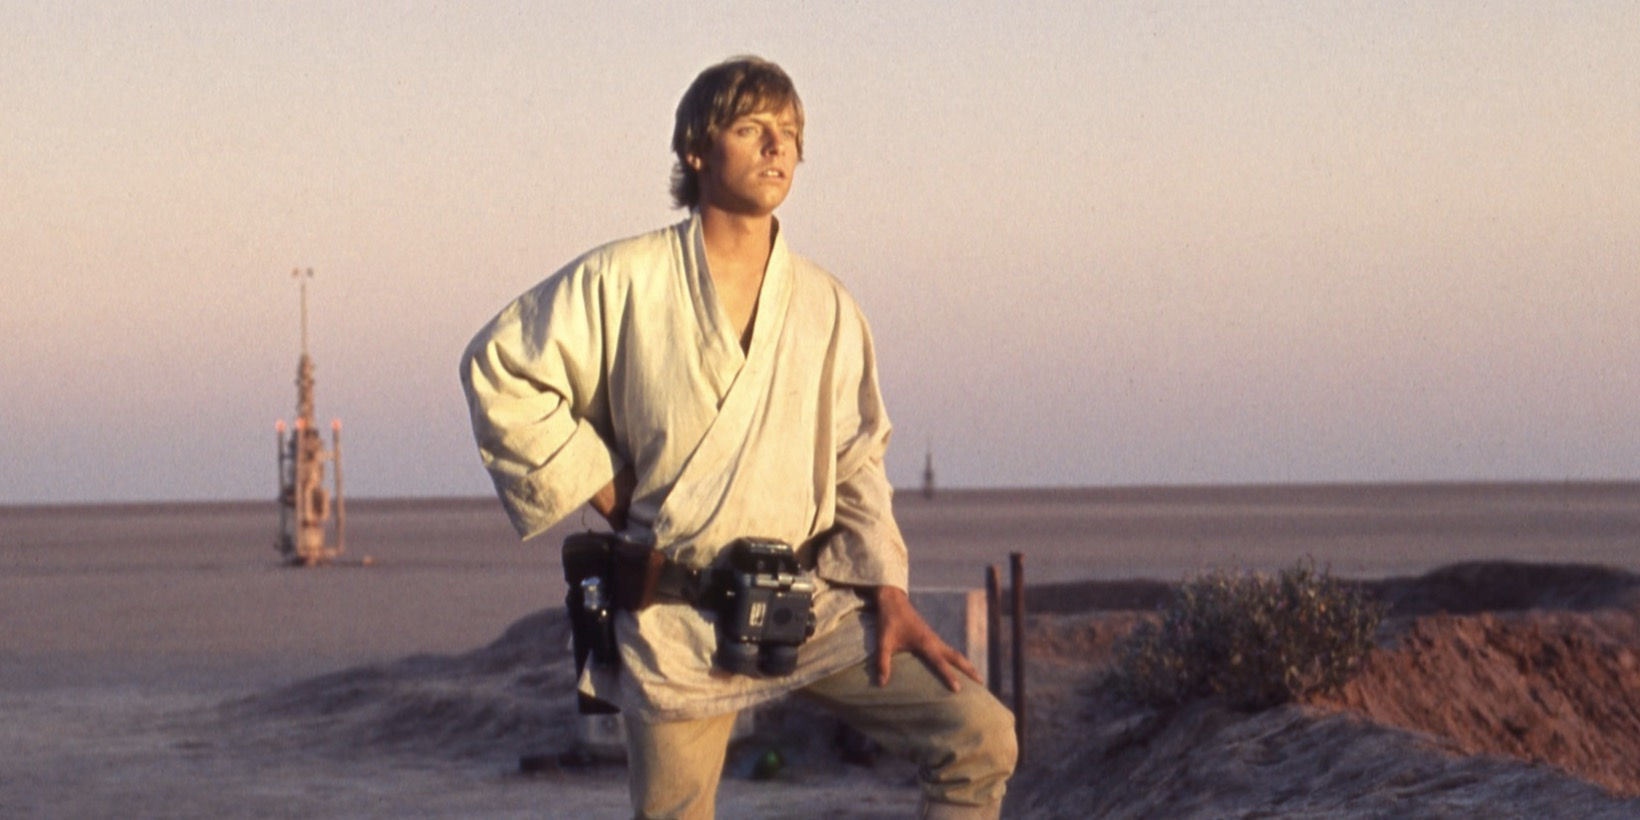 summer blockbuster, movies, star wars, Star Wars Episode IV: A New Hope